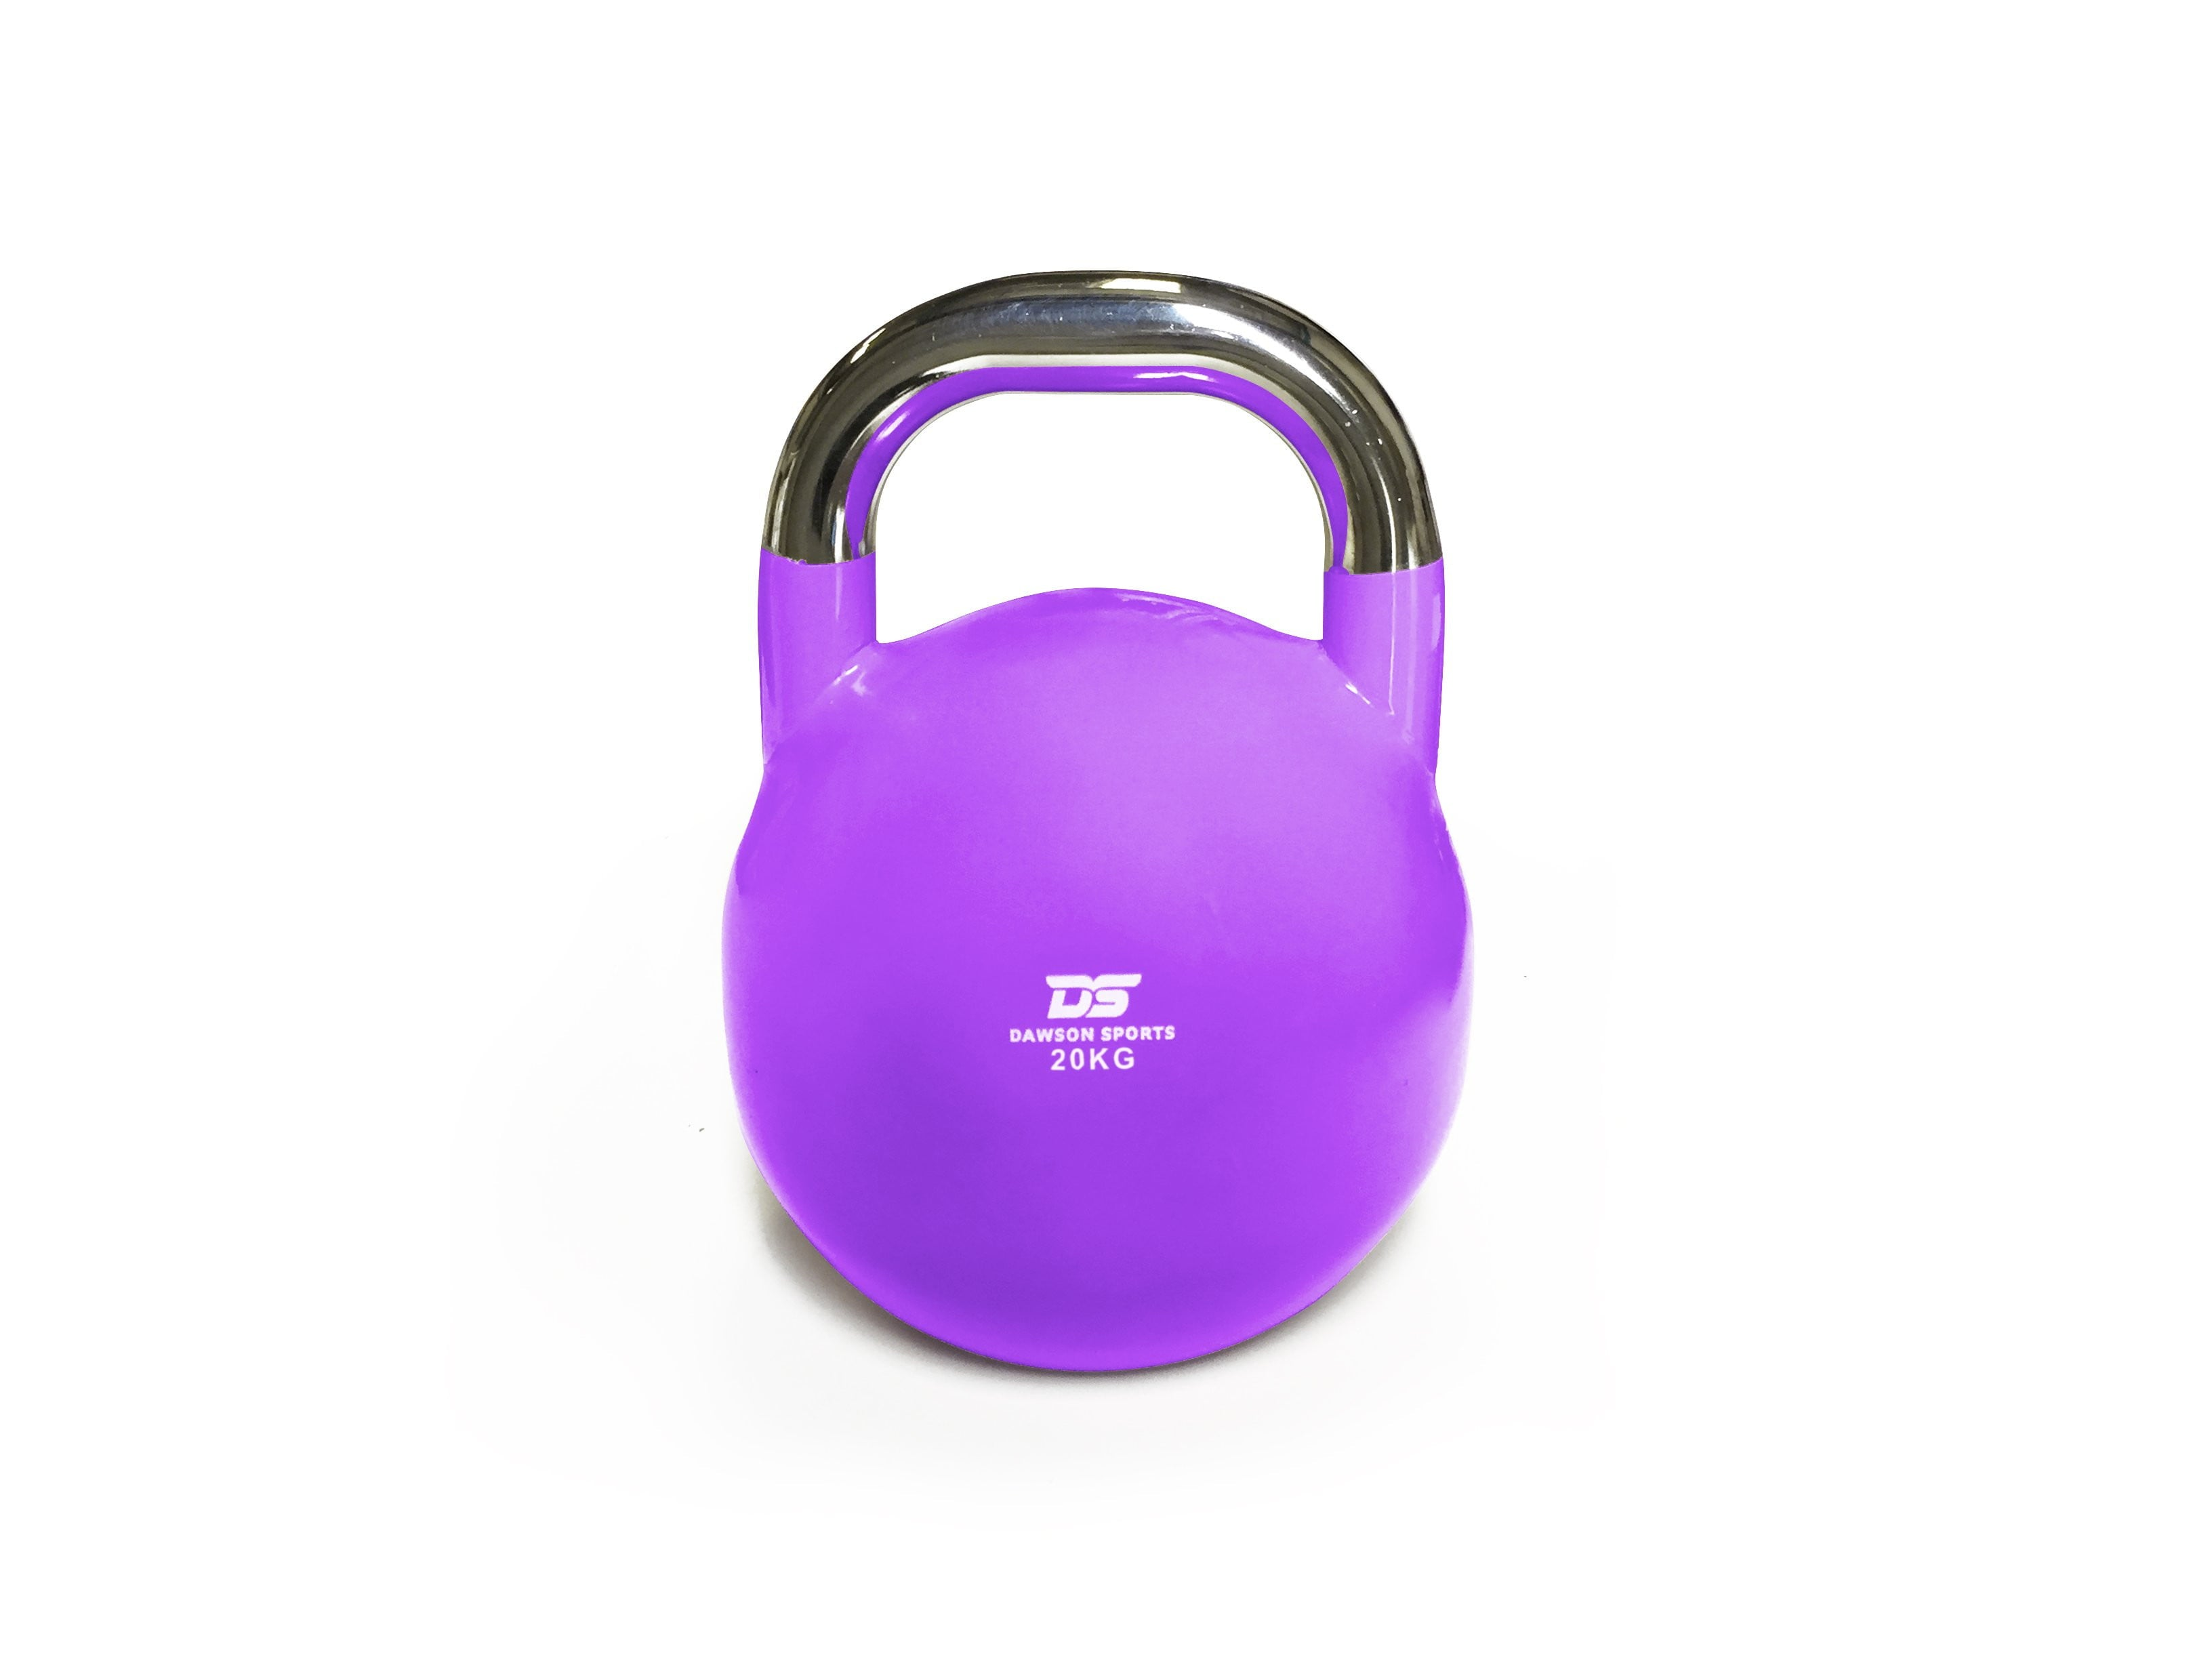 Dawson Sports Competition Kettle Bells